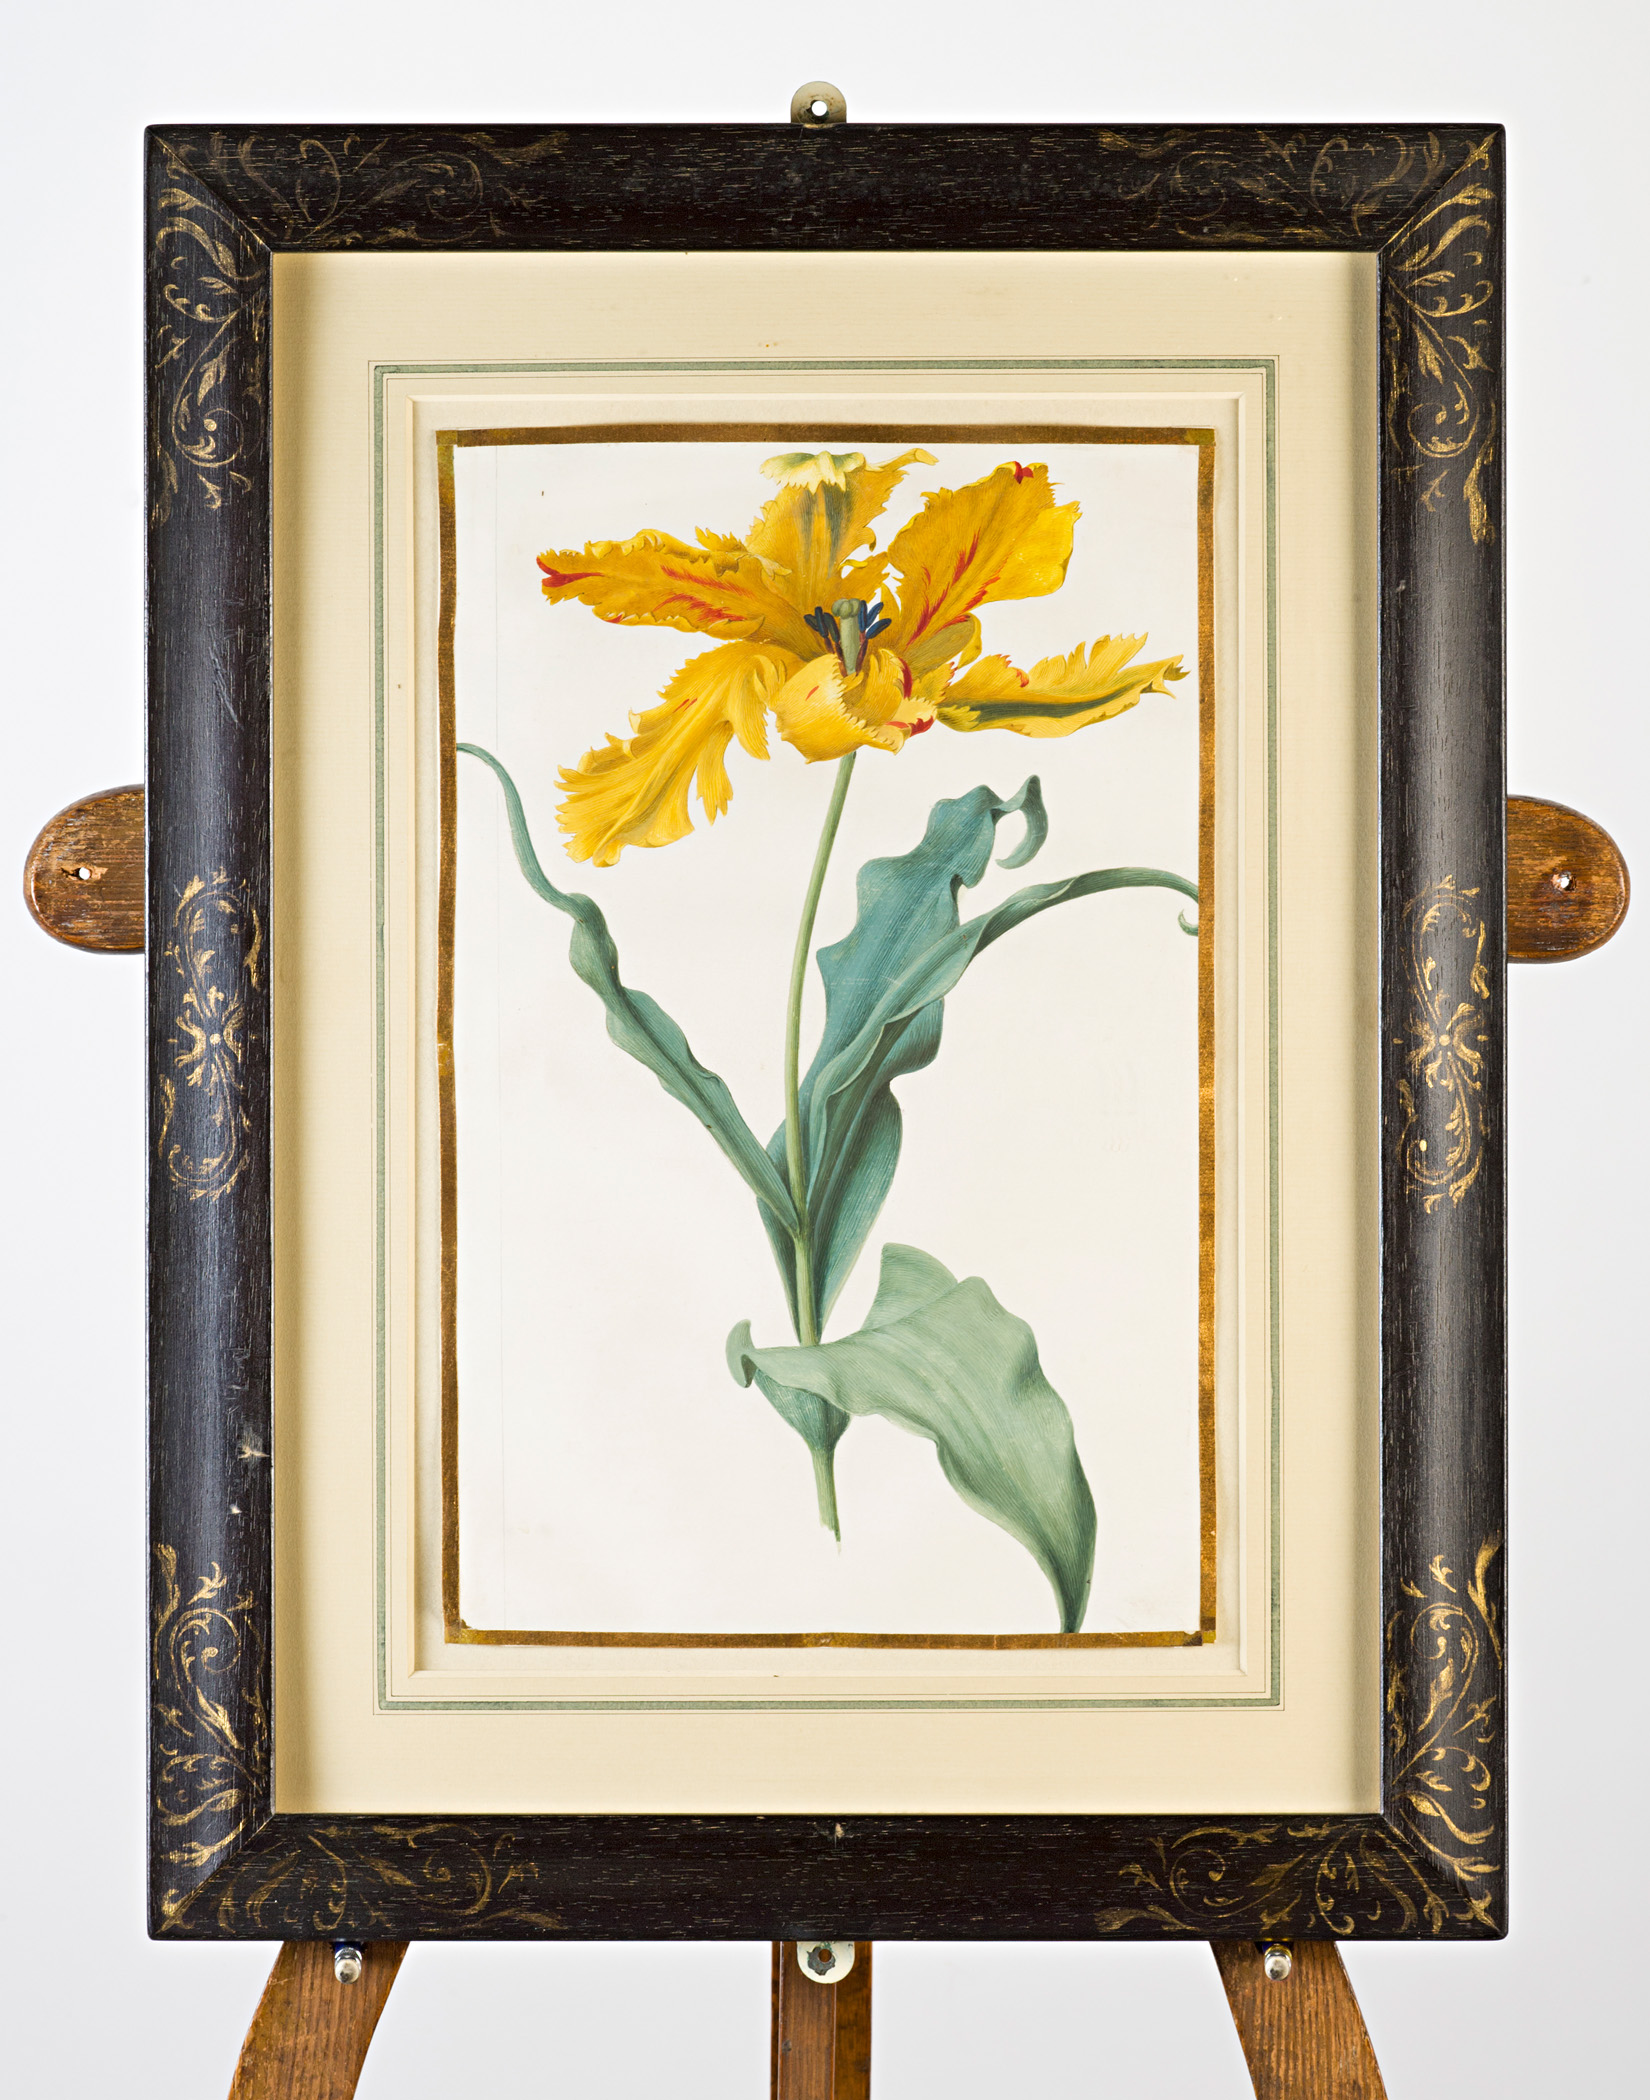 Yellow parrot tulip, Attributed to Claude Aubriet (c.1665-1742).